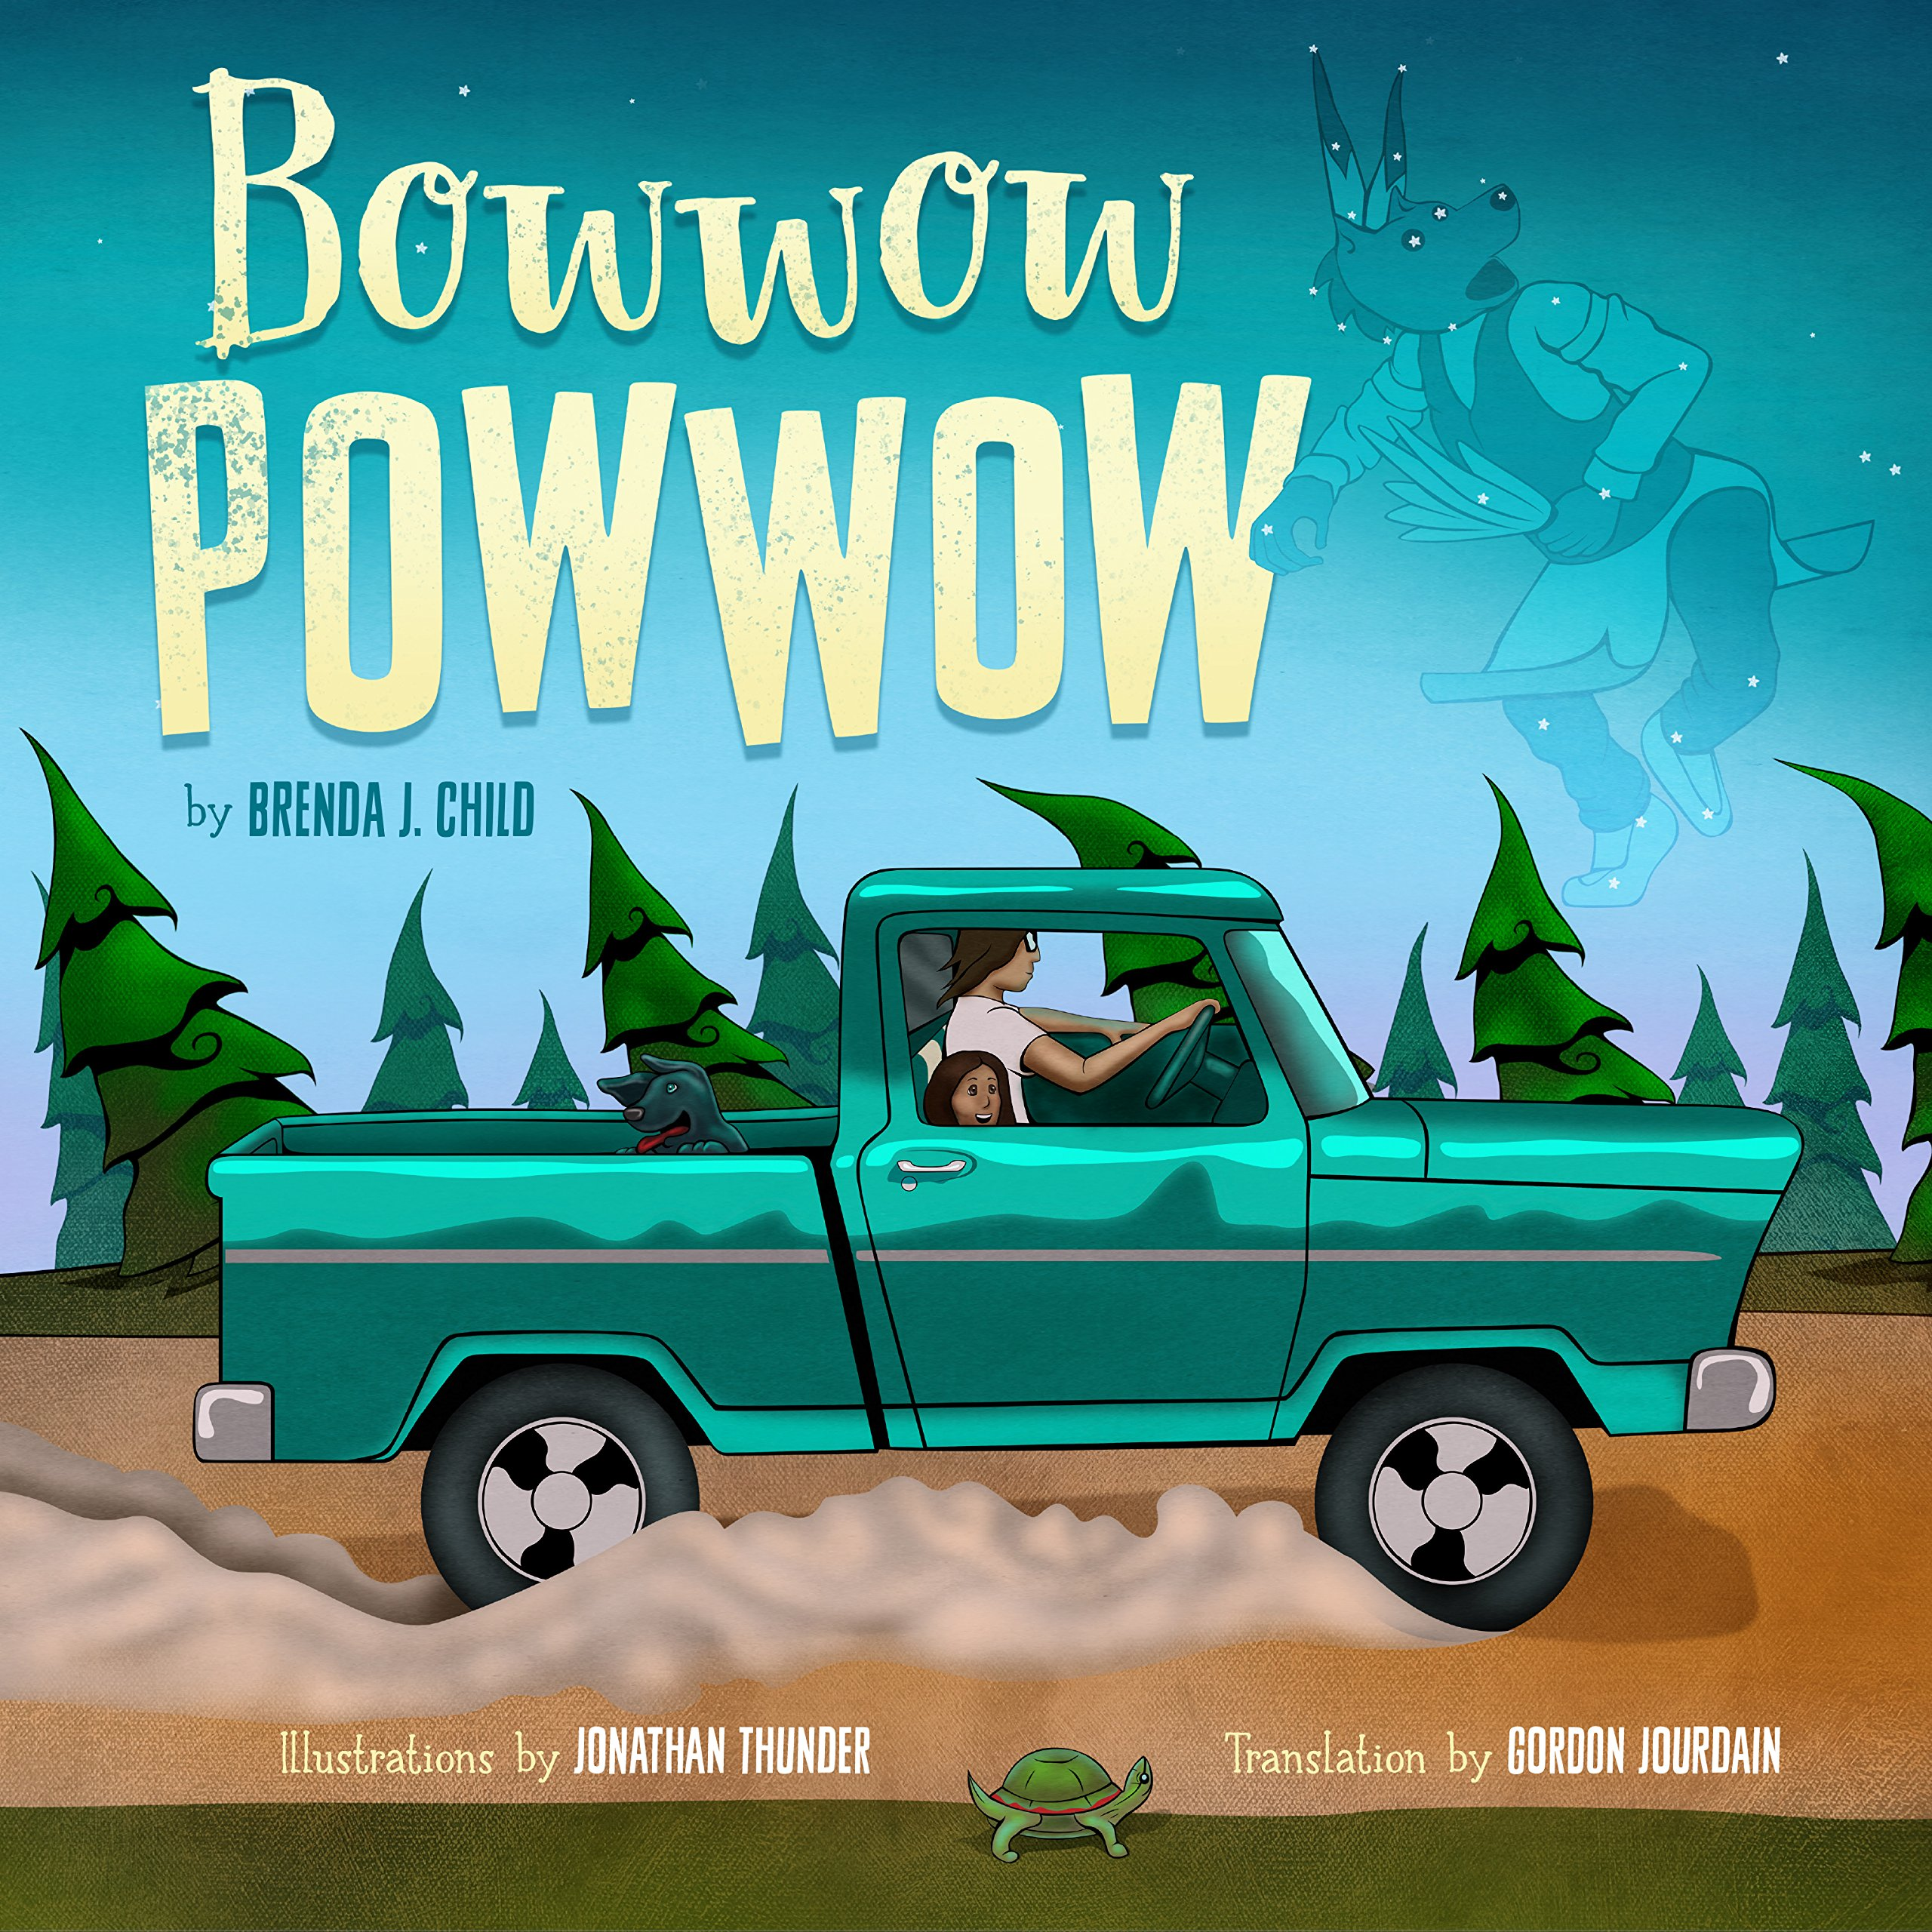 Image result for bow wow pow wow